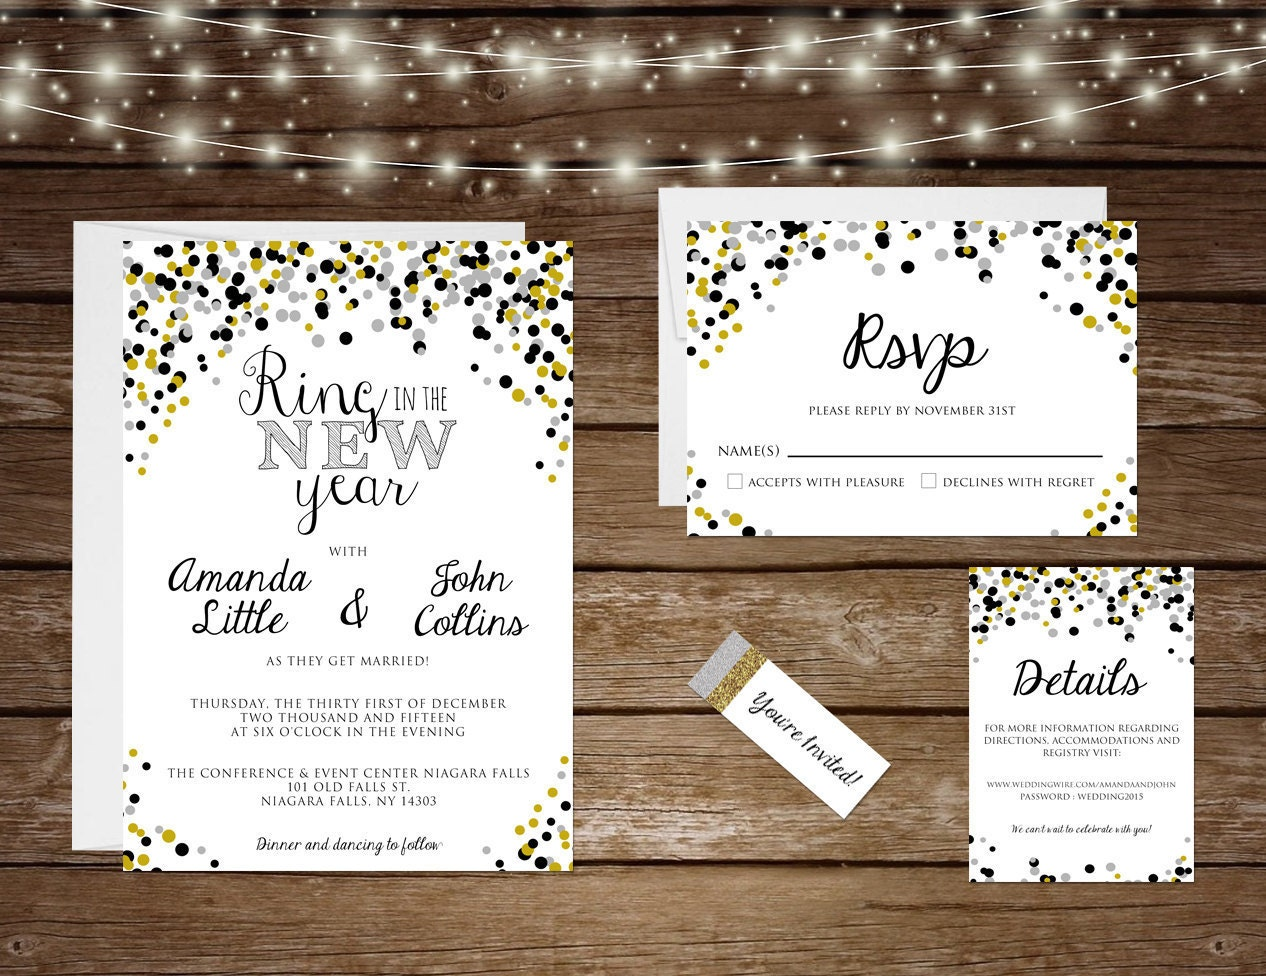 New Years Eve Wedding Invitation: Printable New Years Eve Wedding Invitation Set Ring In The